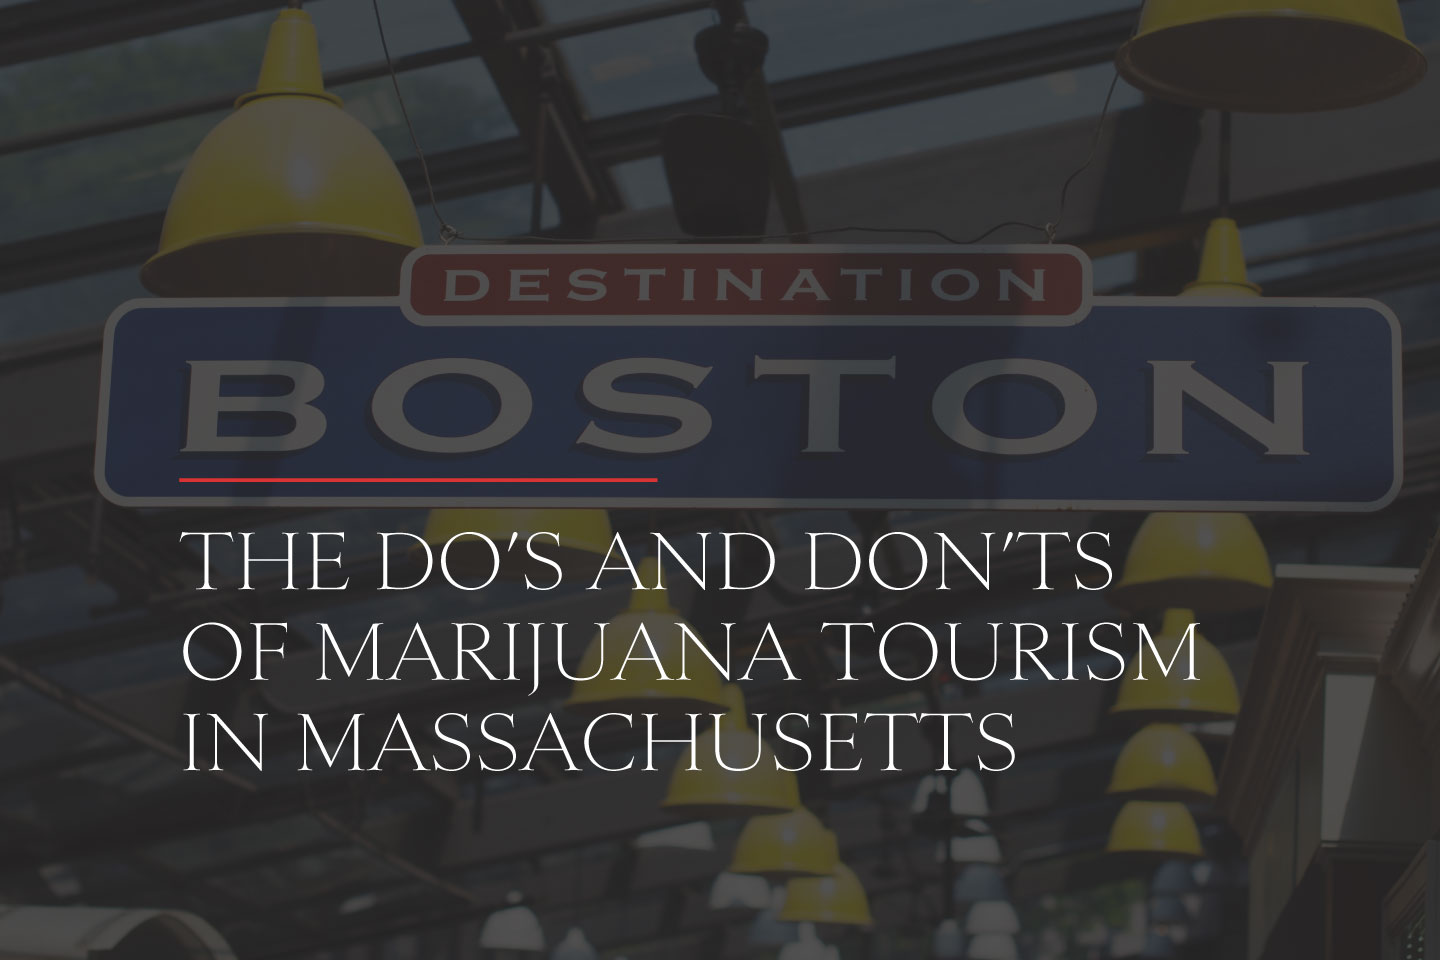 The Dos and Don'ts of Marijuana Tourism in Massachusetts